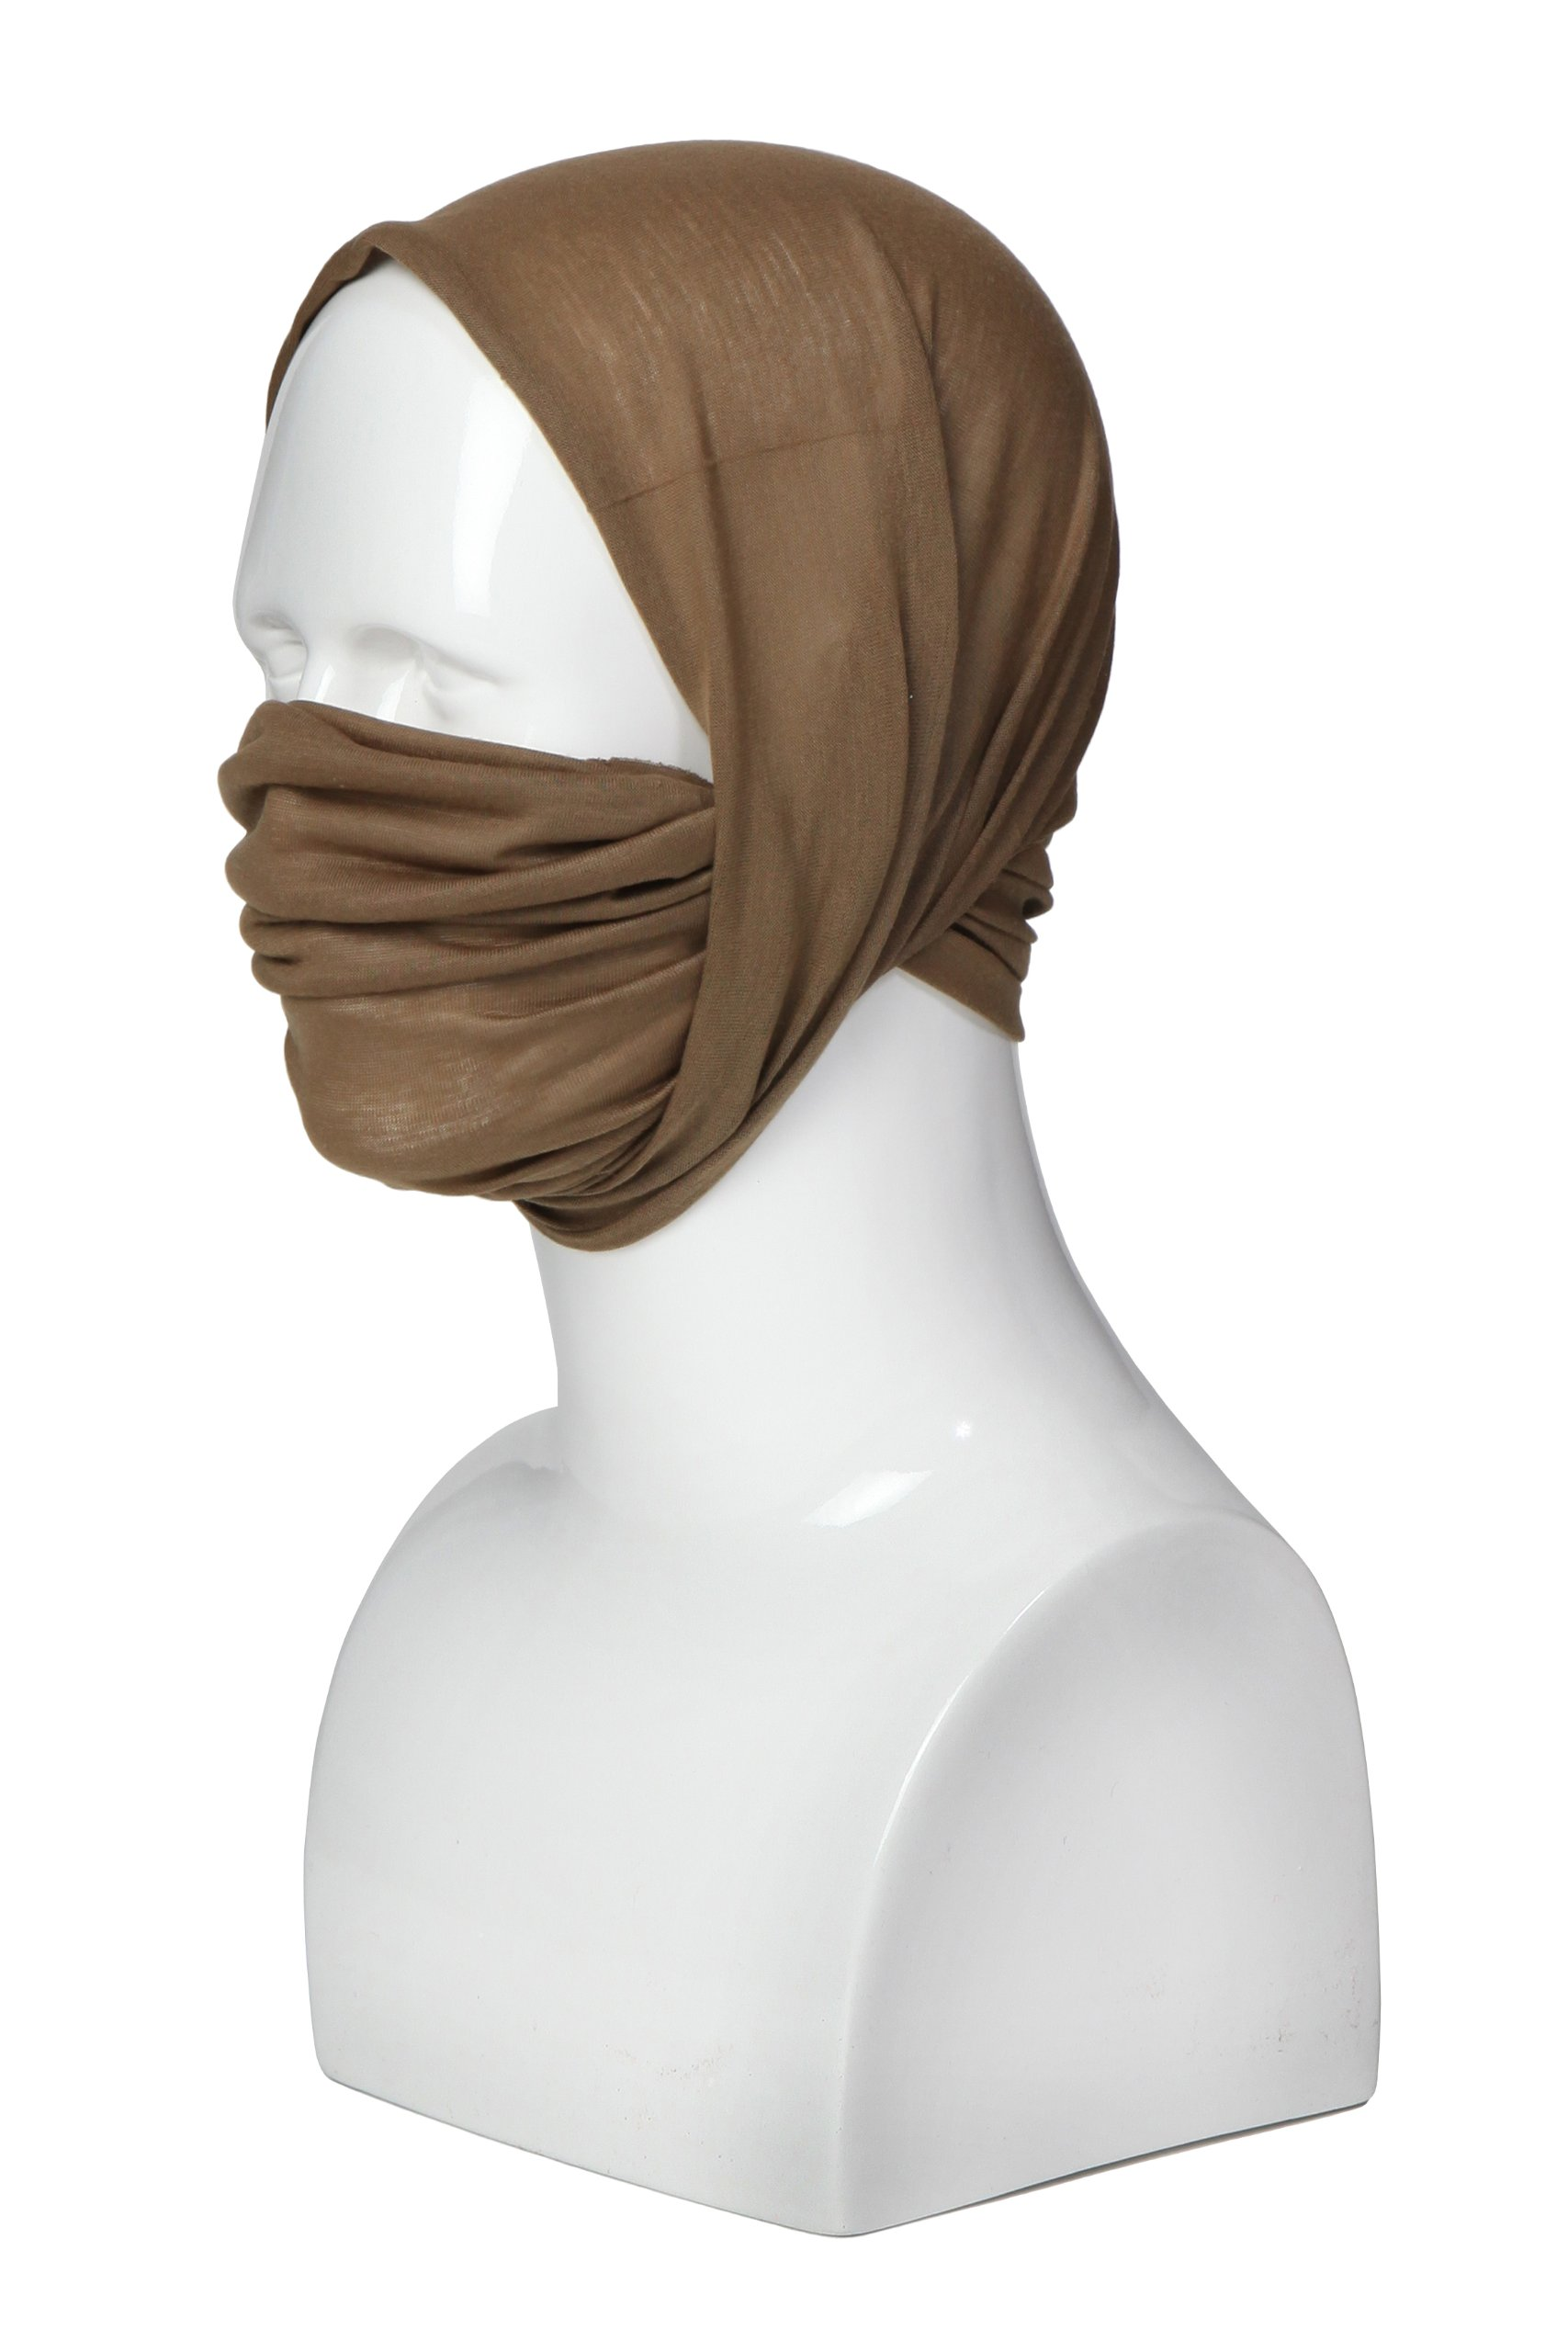 Spec Ops Brand Recon Wrap Coyote Brown - 100010111 by Spec.-Ops. Brand